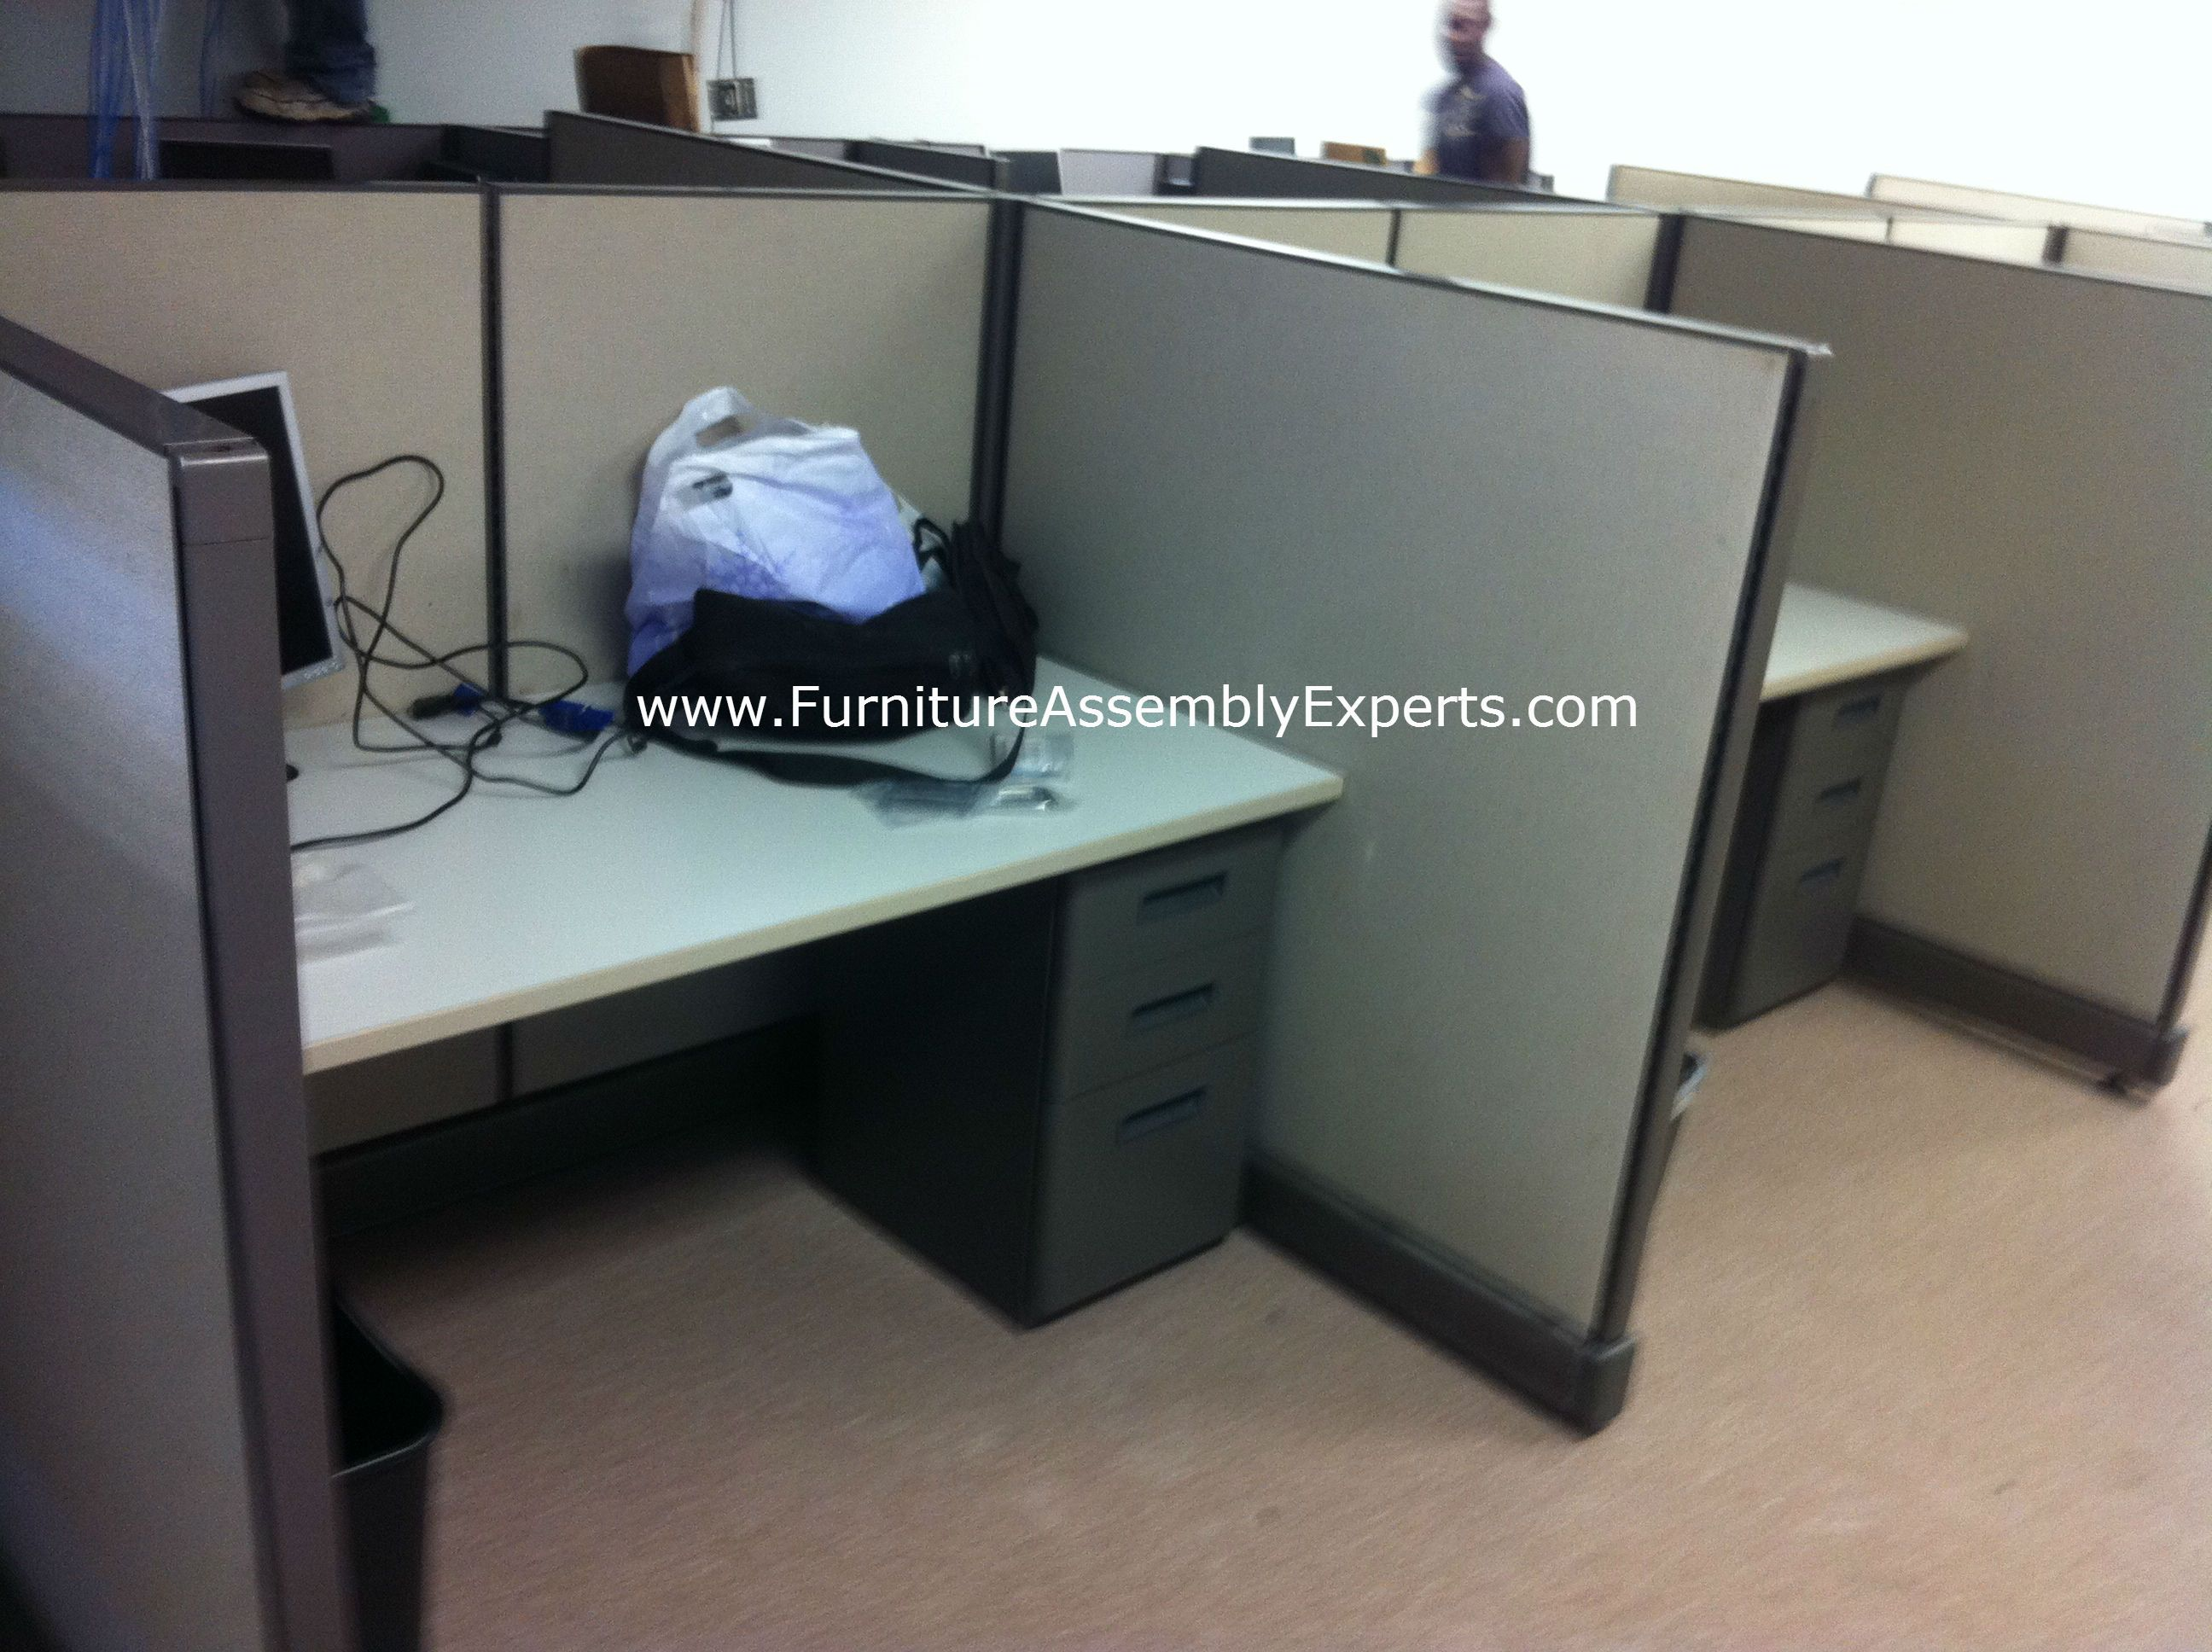 Used Office Cubicle Assembled In Arlington Va By Furniture Assembly Experts Llc Used Office Furniture Commercial Office Furniture Office Furniture